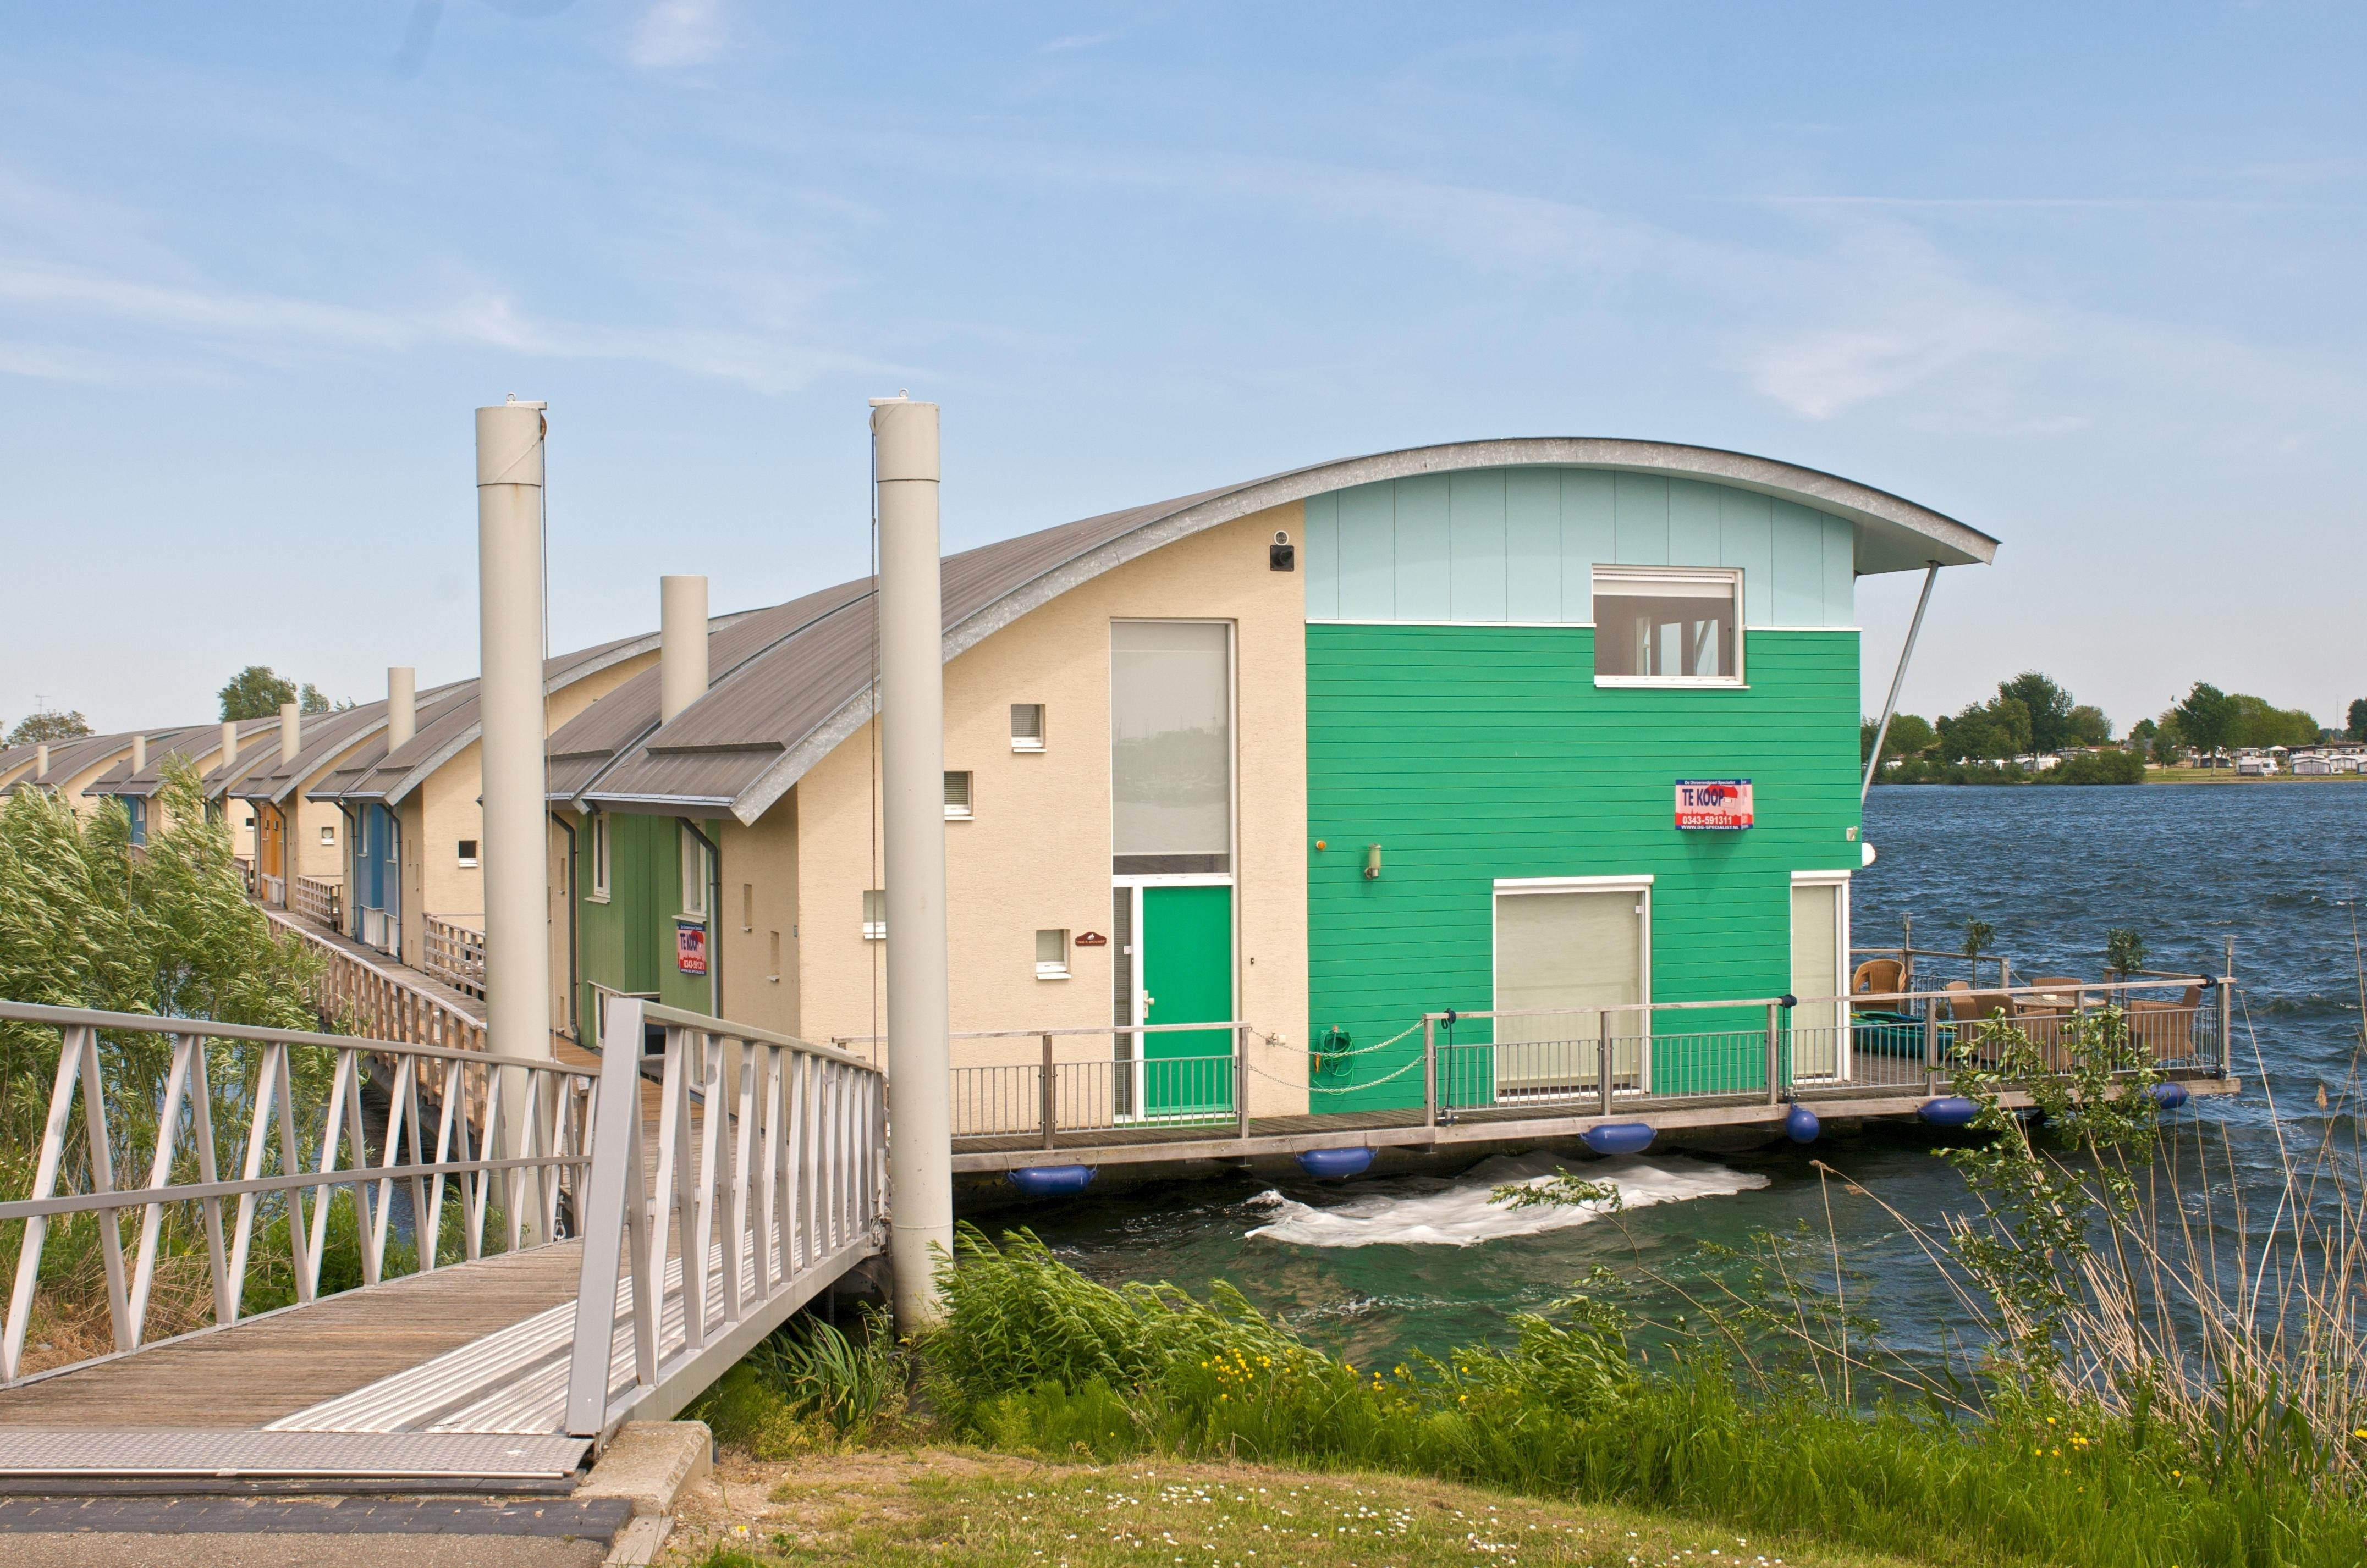 Green houseboat